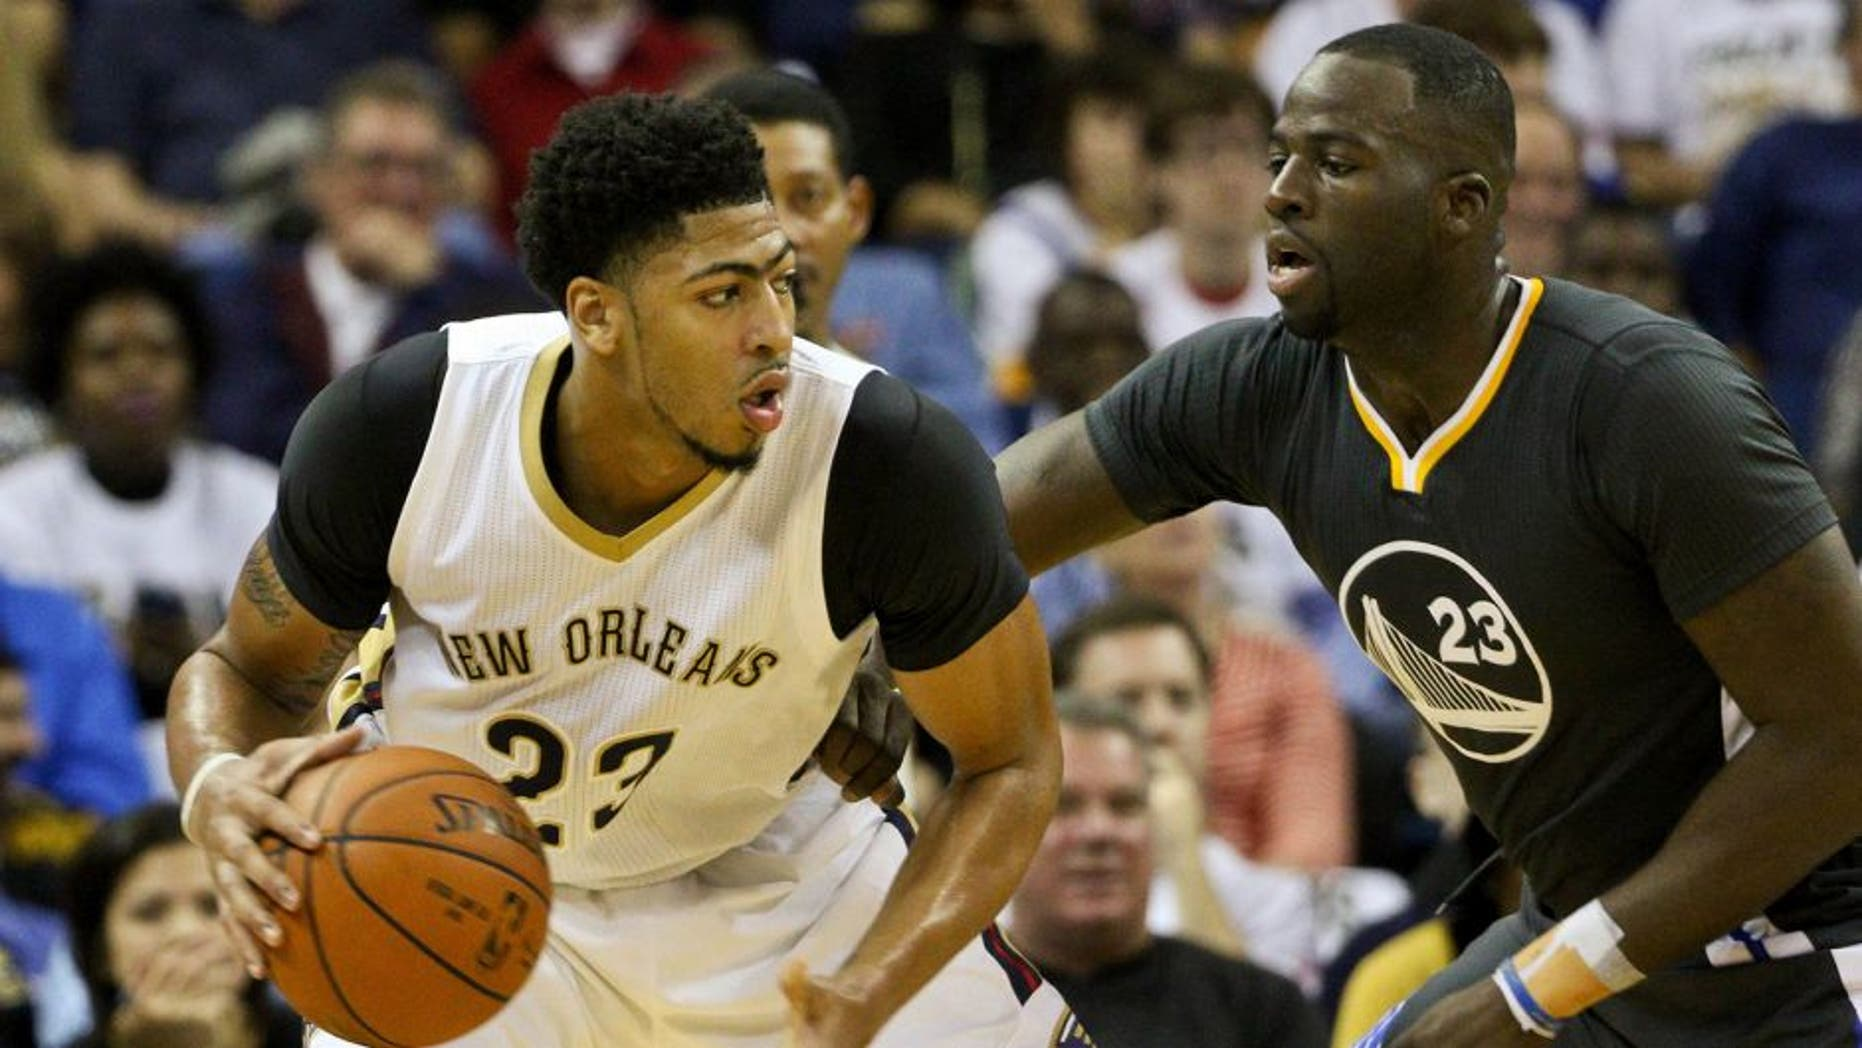 Oct 31, 2015; New Orleans, LA, USA; New Orleans Pelicans forward Anthony Davis (23) is guarded by Golden State Warriors forward Draymond Green (23) during the first half of a game at Smoothie King Center. Mandatory Credit: Derick E. Hingle-USA TODAY Sports